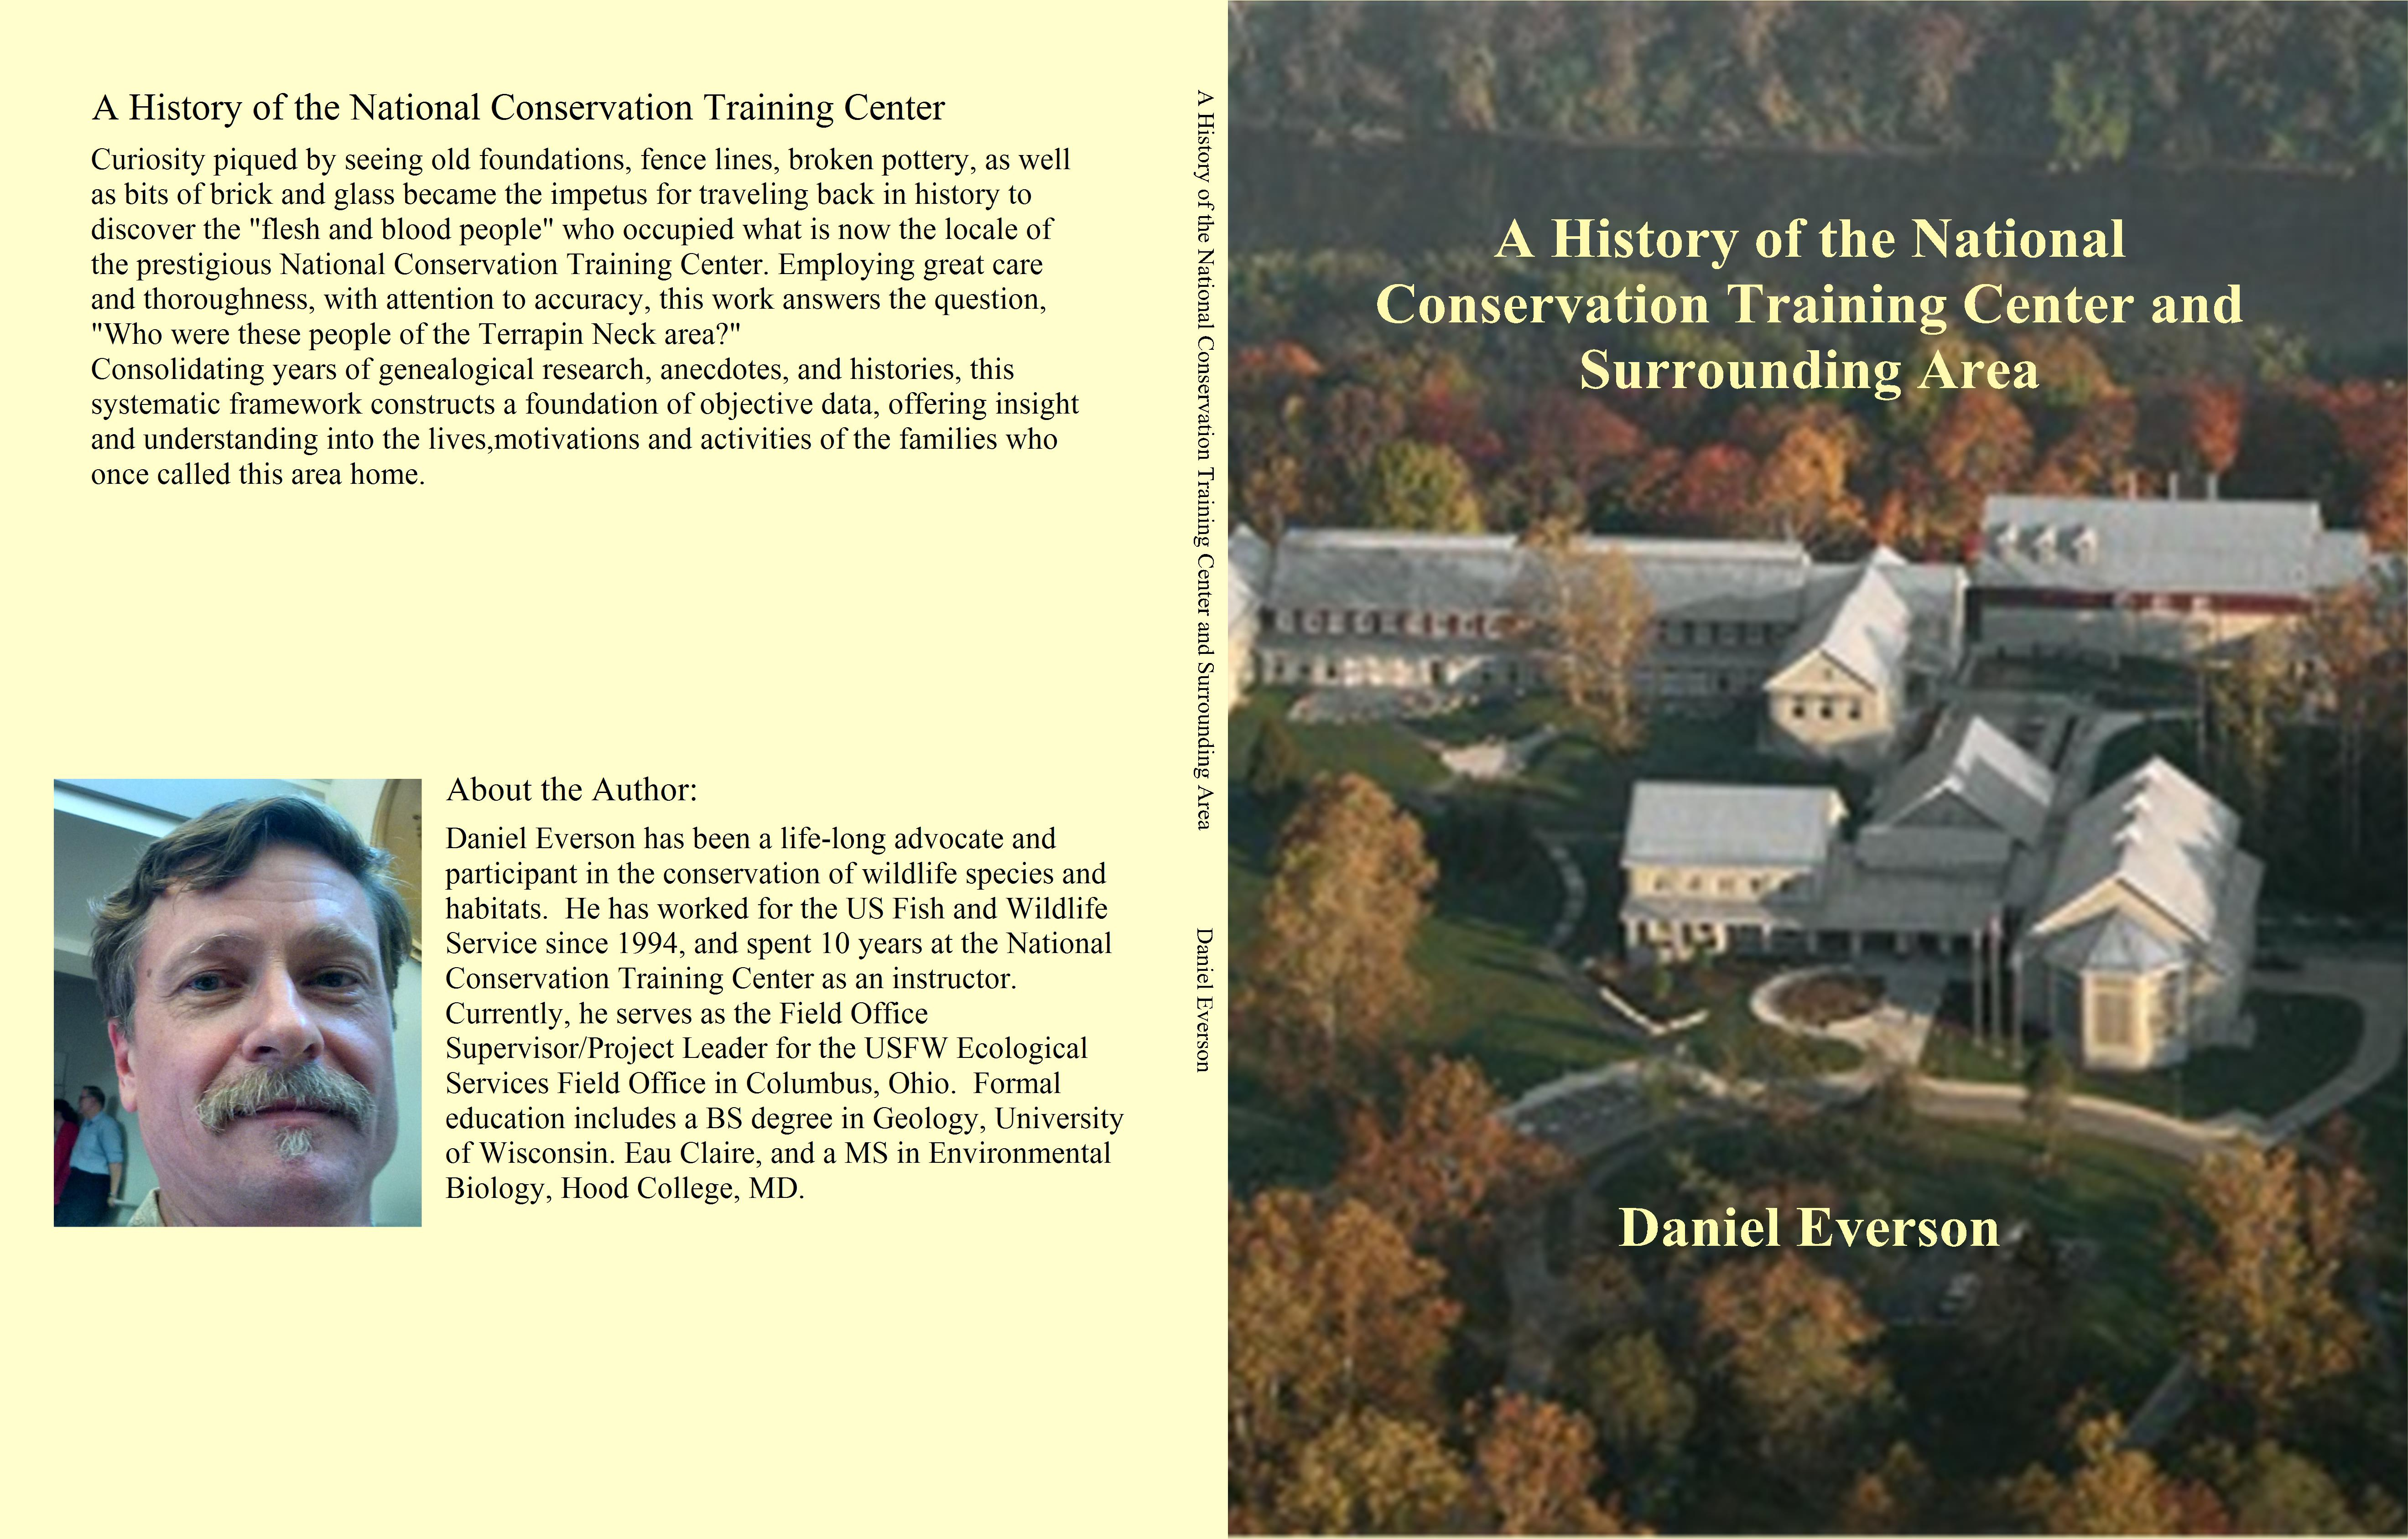 A History of the National Conservation Training Center and Surrounding Area cover image